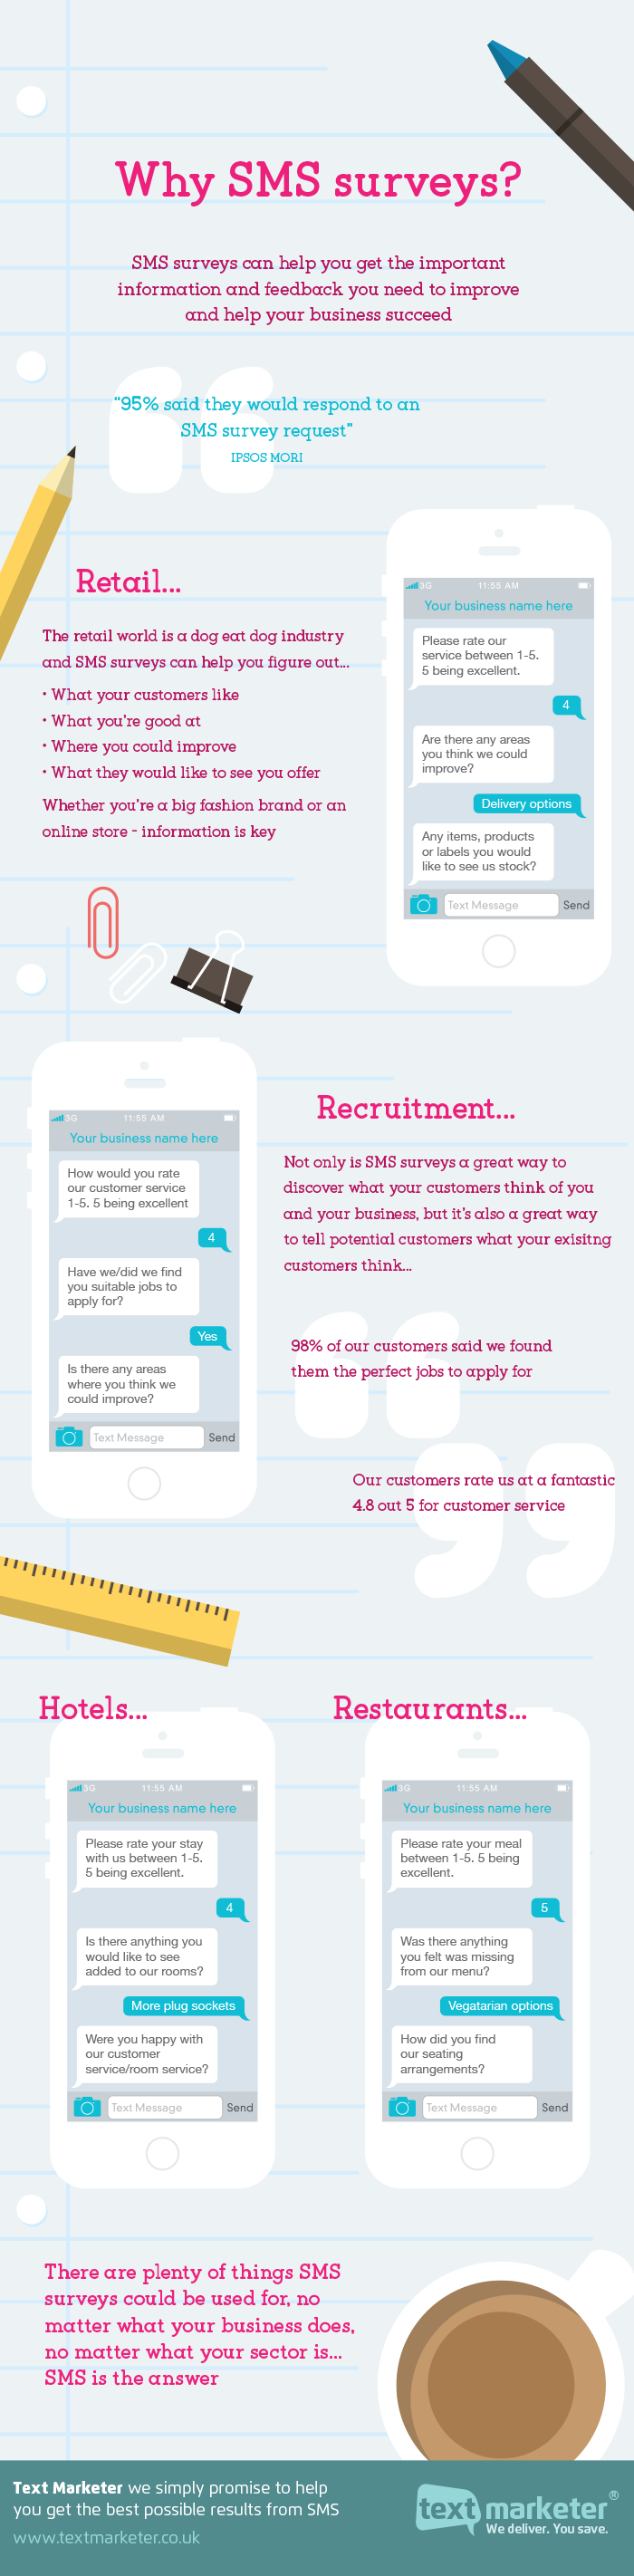 Infographic showing effectiveness of sms surveys